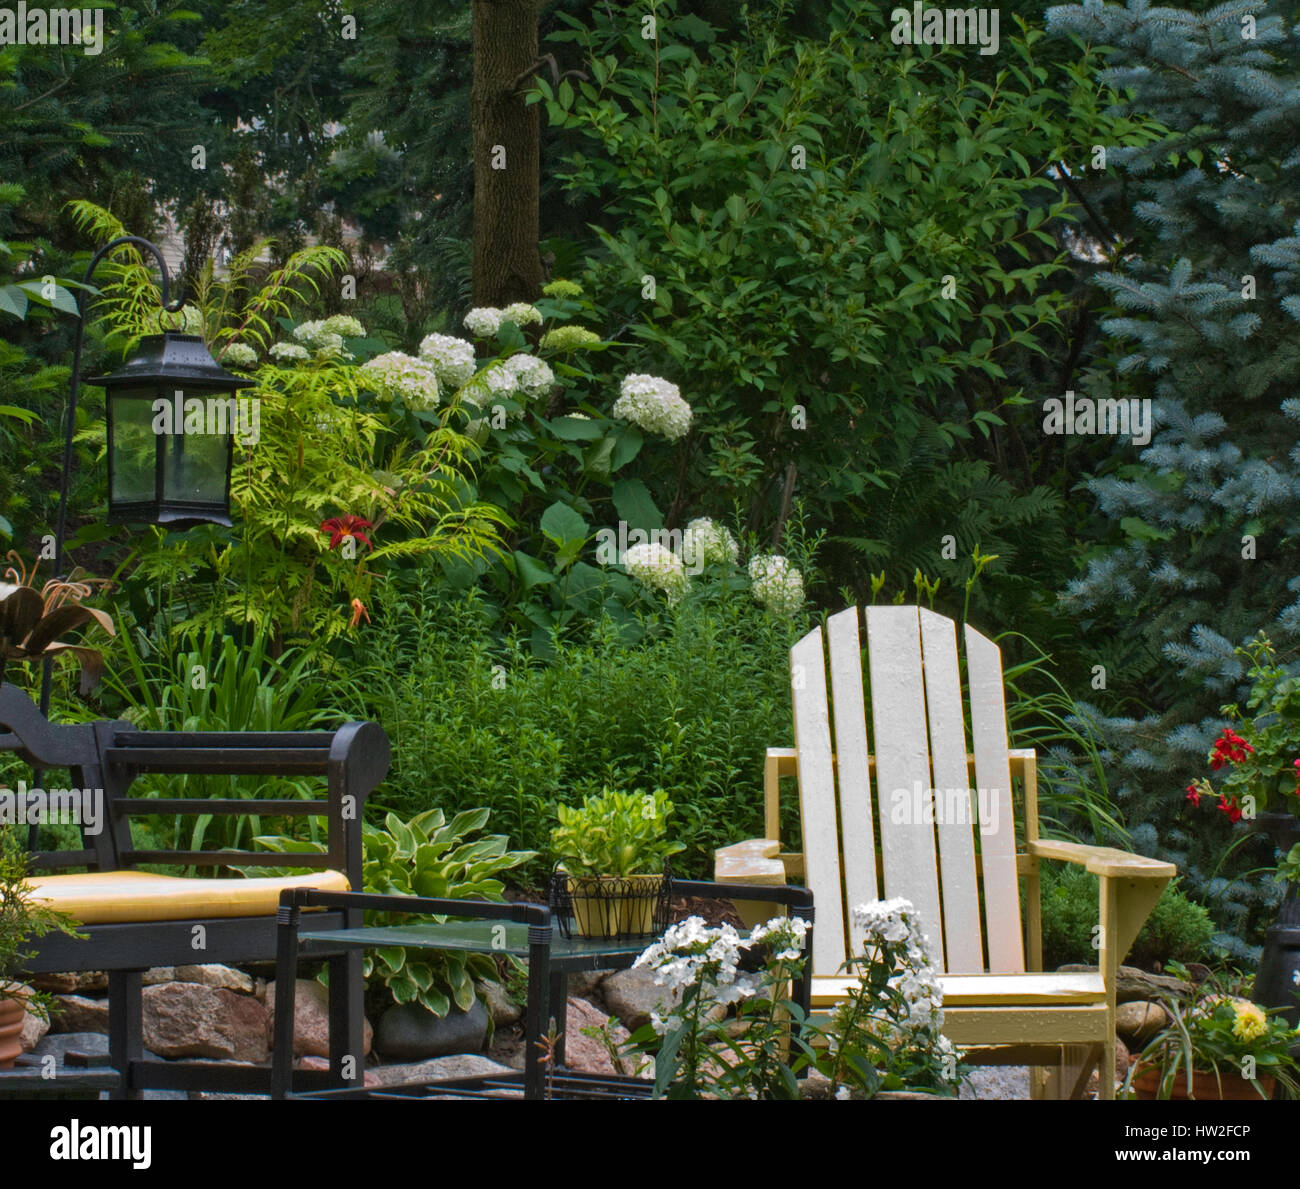 Sitting area in Garden with Annabelle Hydrangea - Stock Image